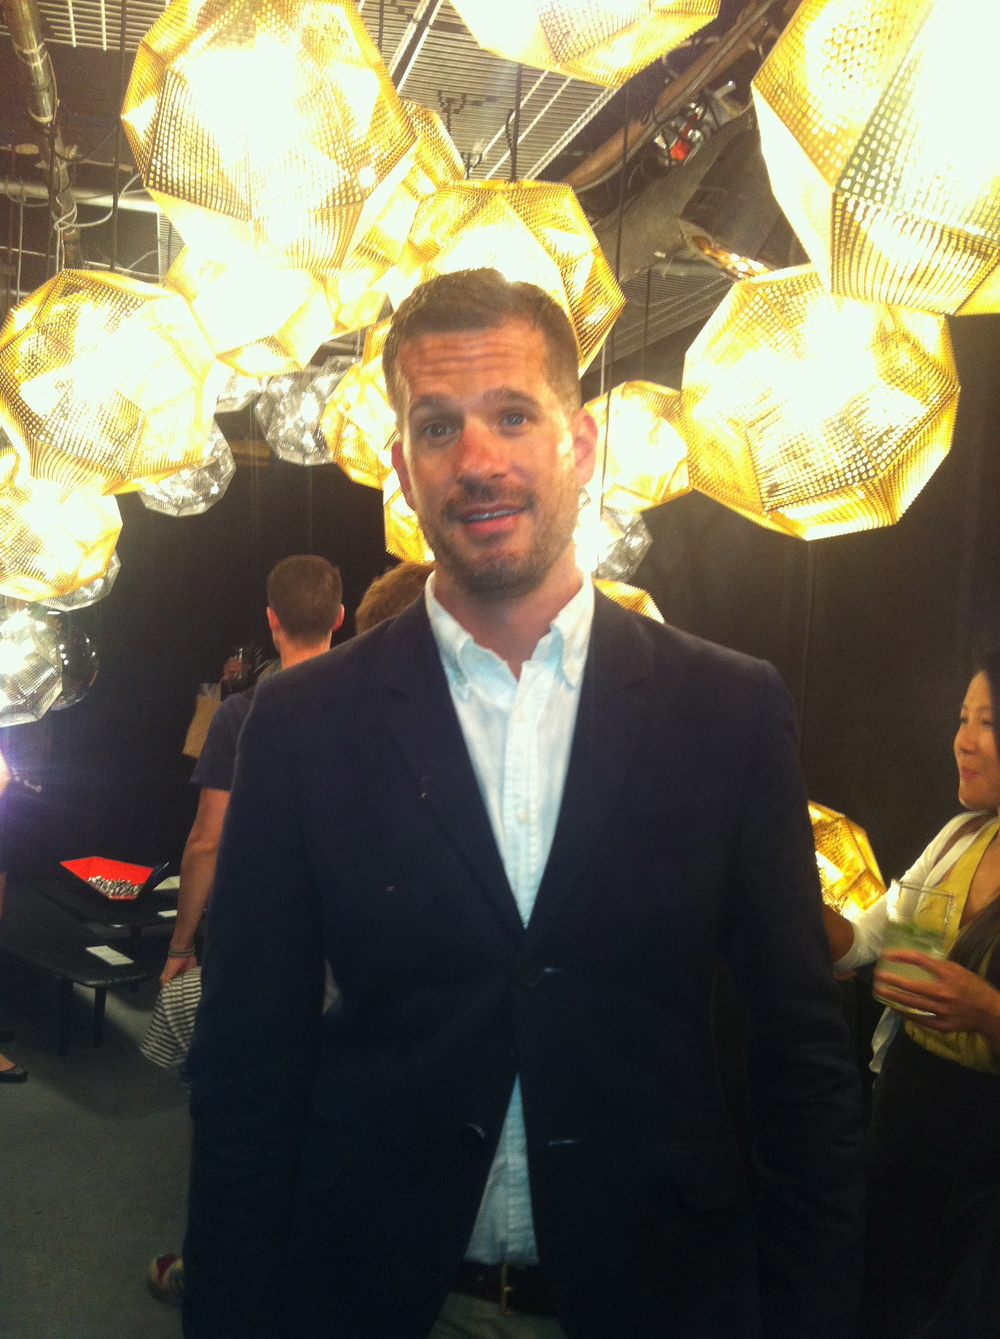 Mr Call at the Tom Dixon London Underground Event Sponsored by Surface Magazine